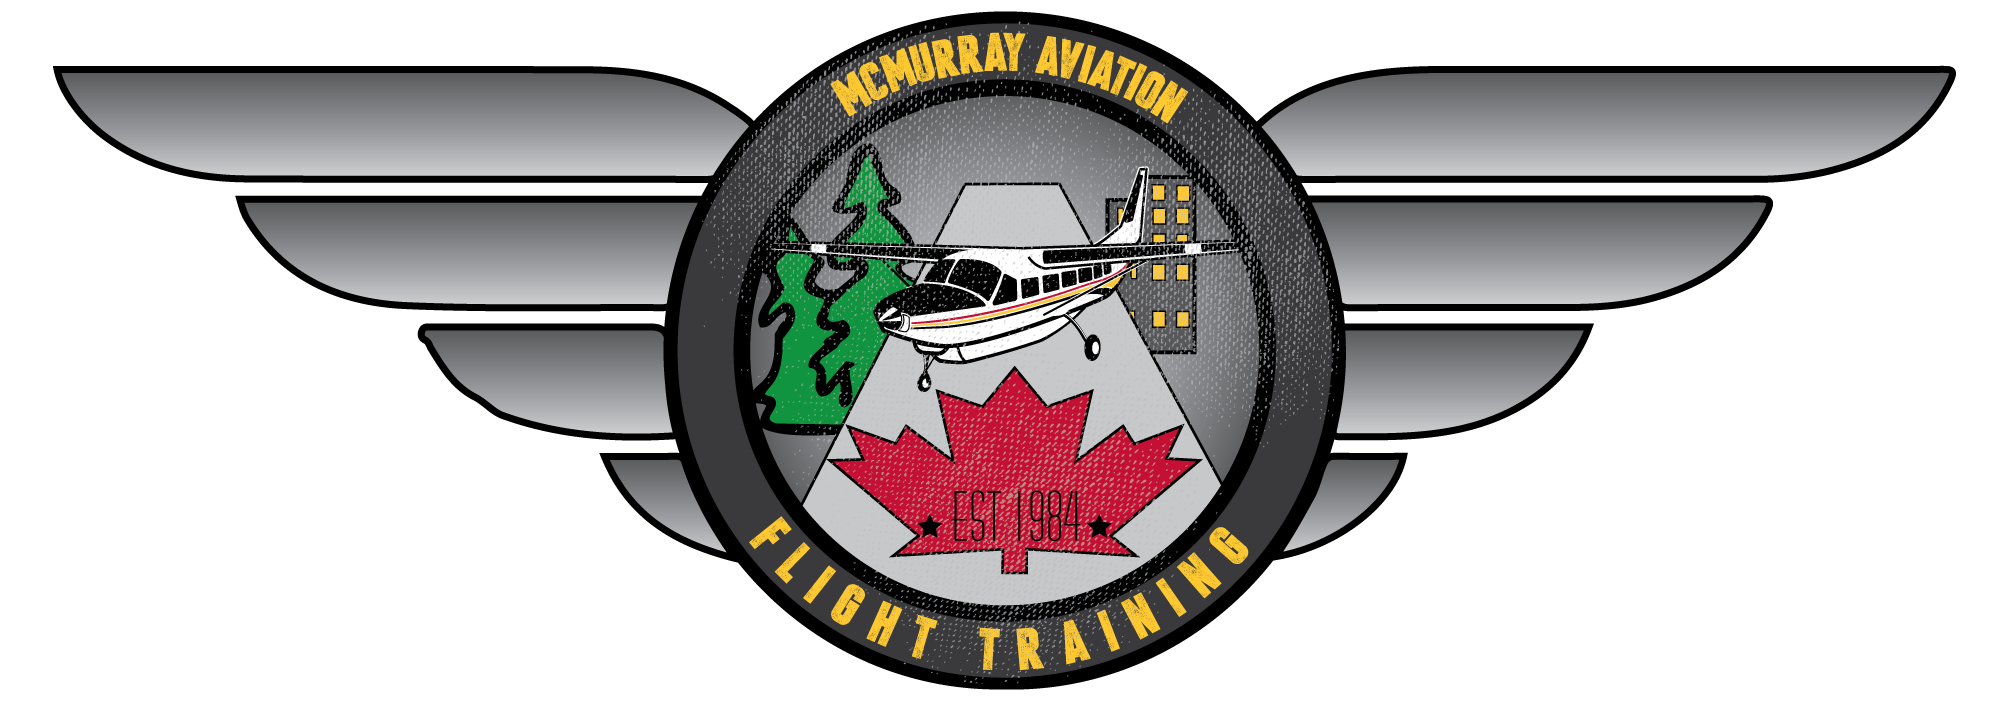 McMurray Aviation